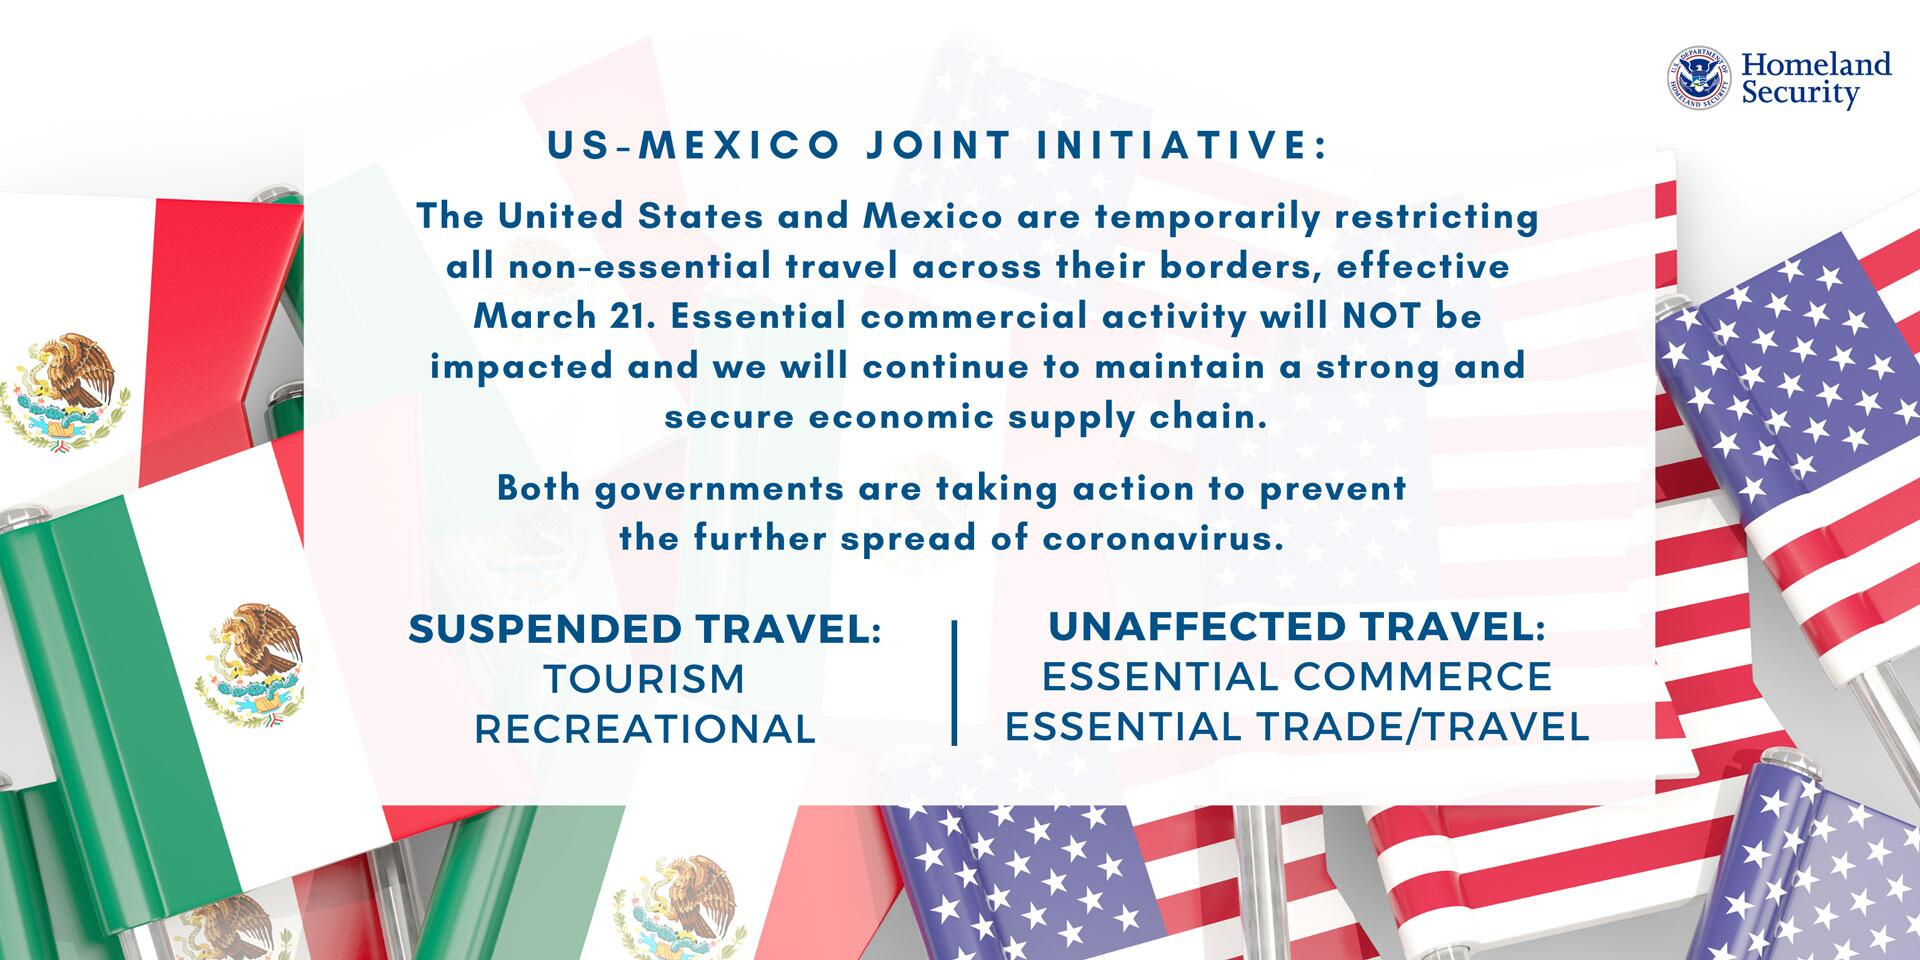 US-Mexico Joint Initiative: The United States and Mexico are temporarily restricting all non-essential travel across their borders, effective March 21. Essential commercial activity will NOT be impacted and we will continue to maintain a strong and secure economic supply chain. Both government are taking action to prevent the further spread of coronavirus. | Suspended Travel: Tourism, Recreational | Unaffected Travel: Essential Commerce, Essential Trade/Travel